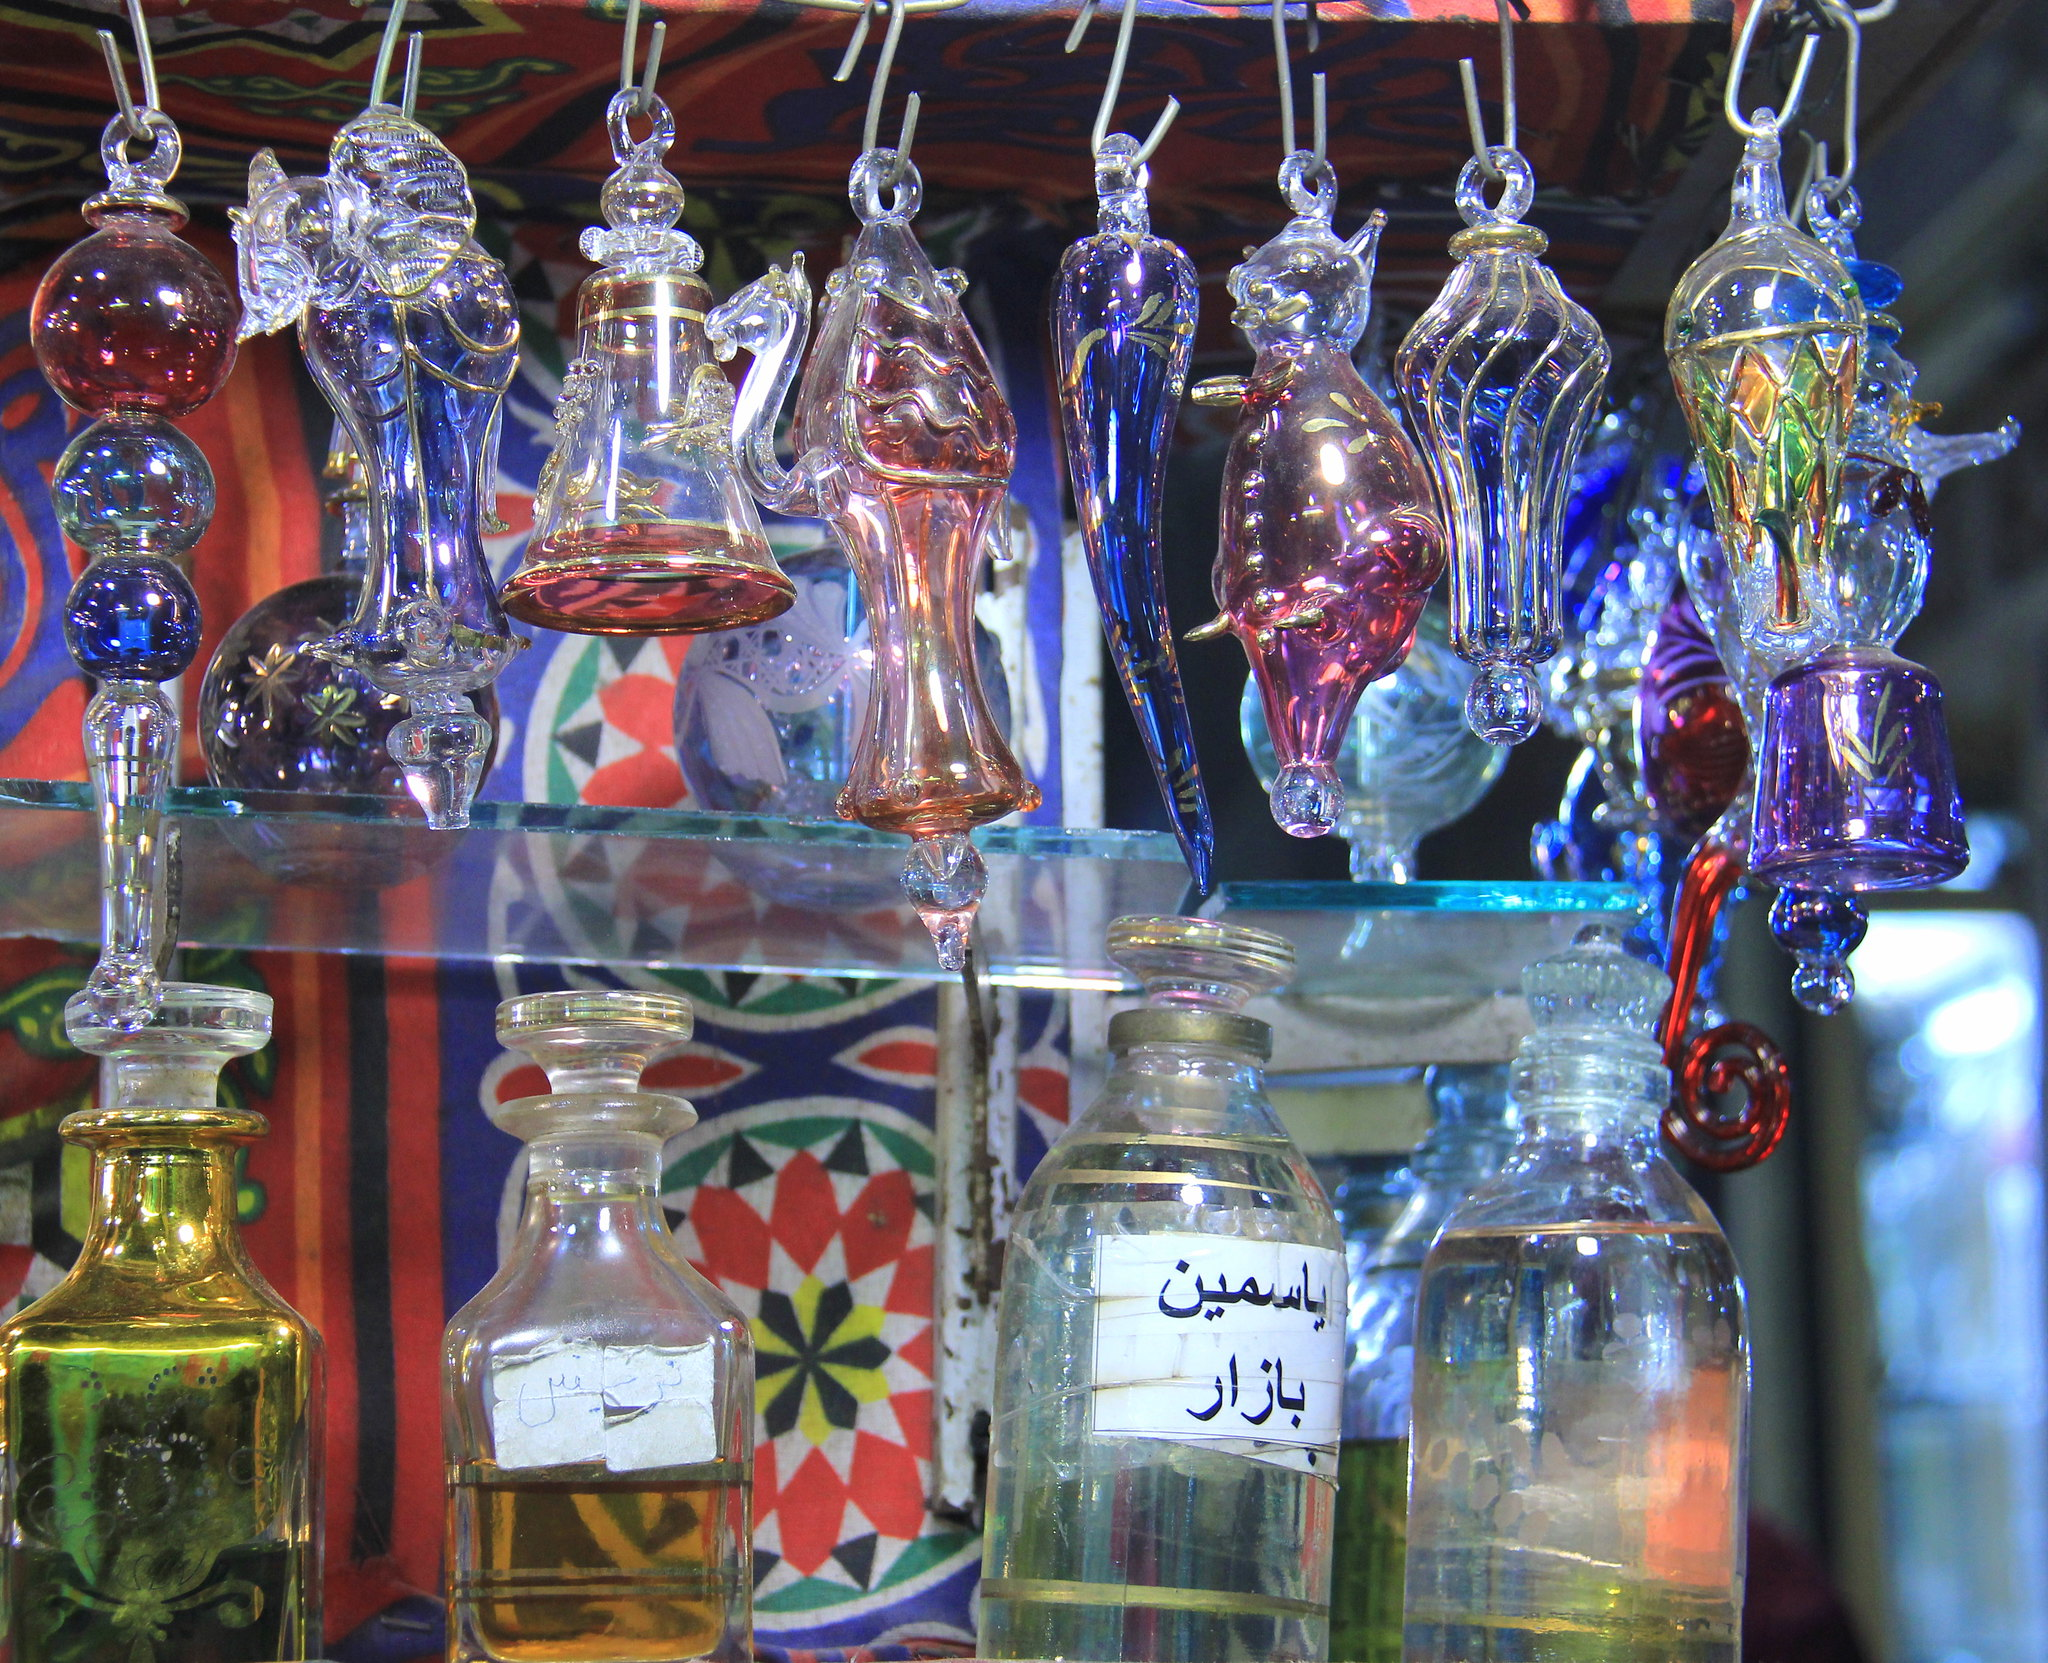 A Khan el khalili guide for shoppers